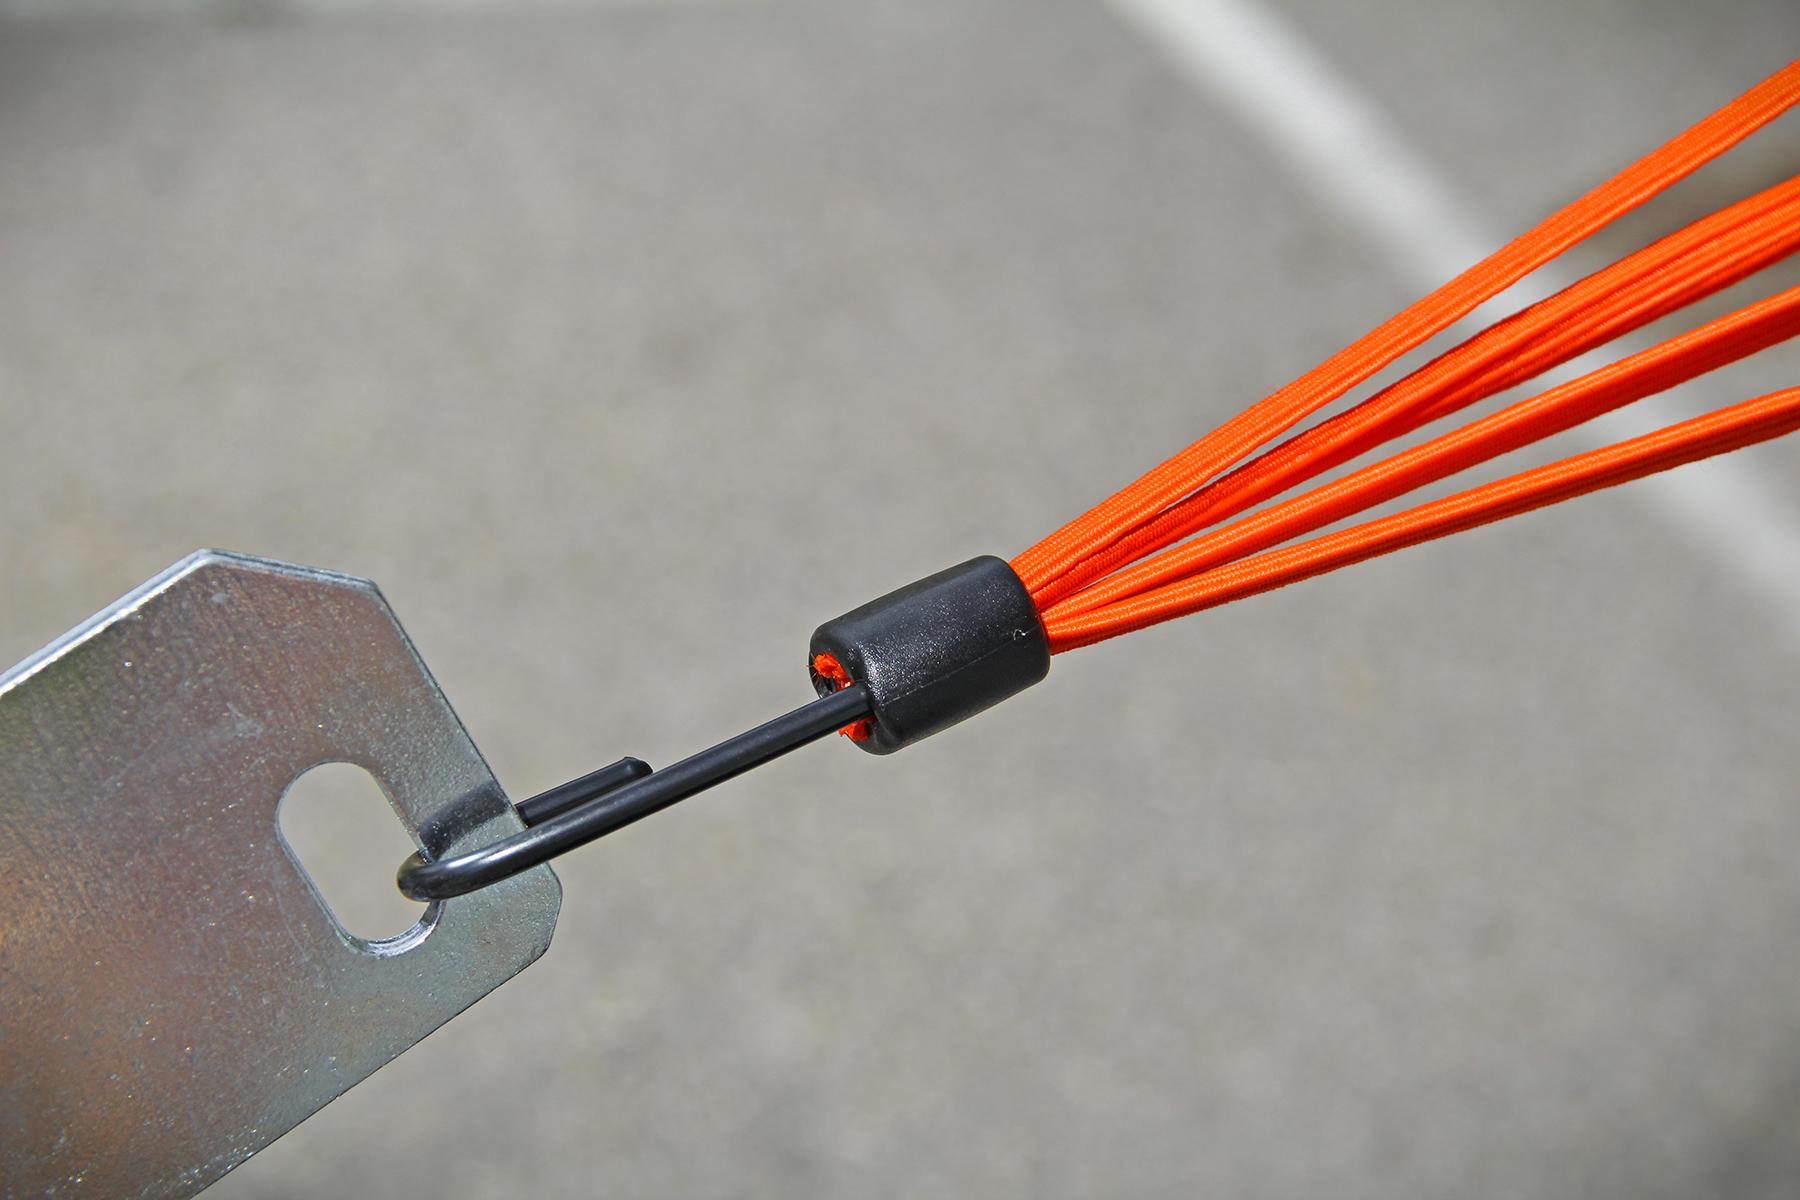 Bungee cords XL 553605 rating